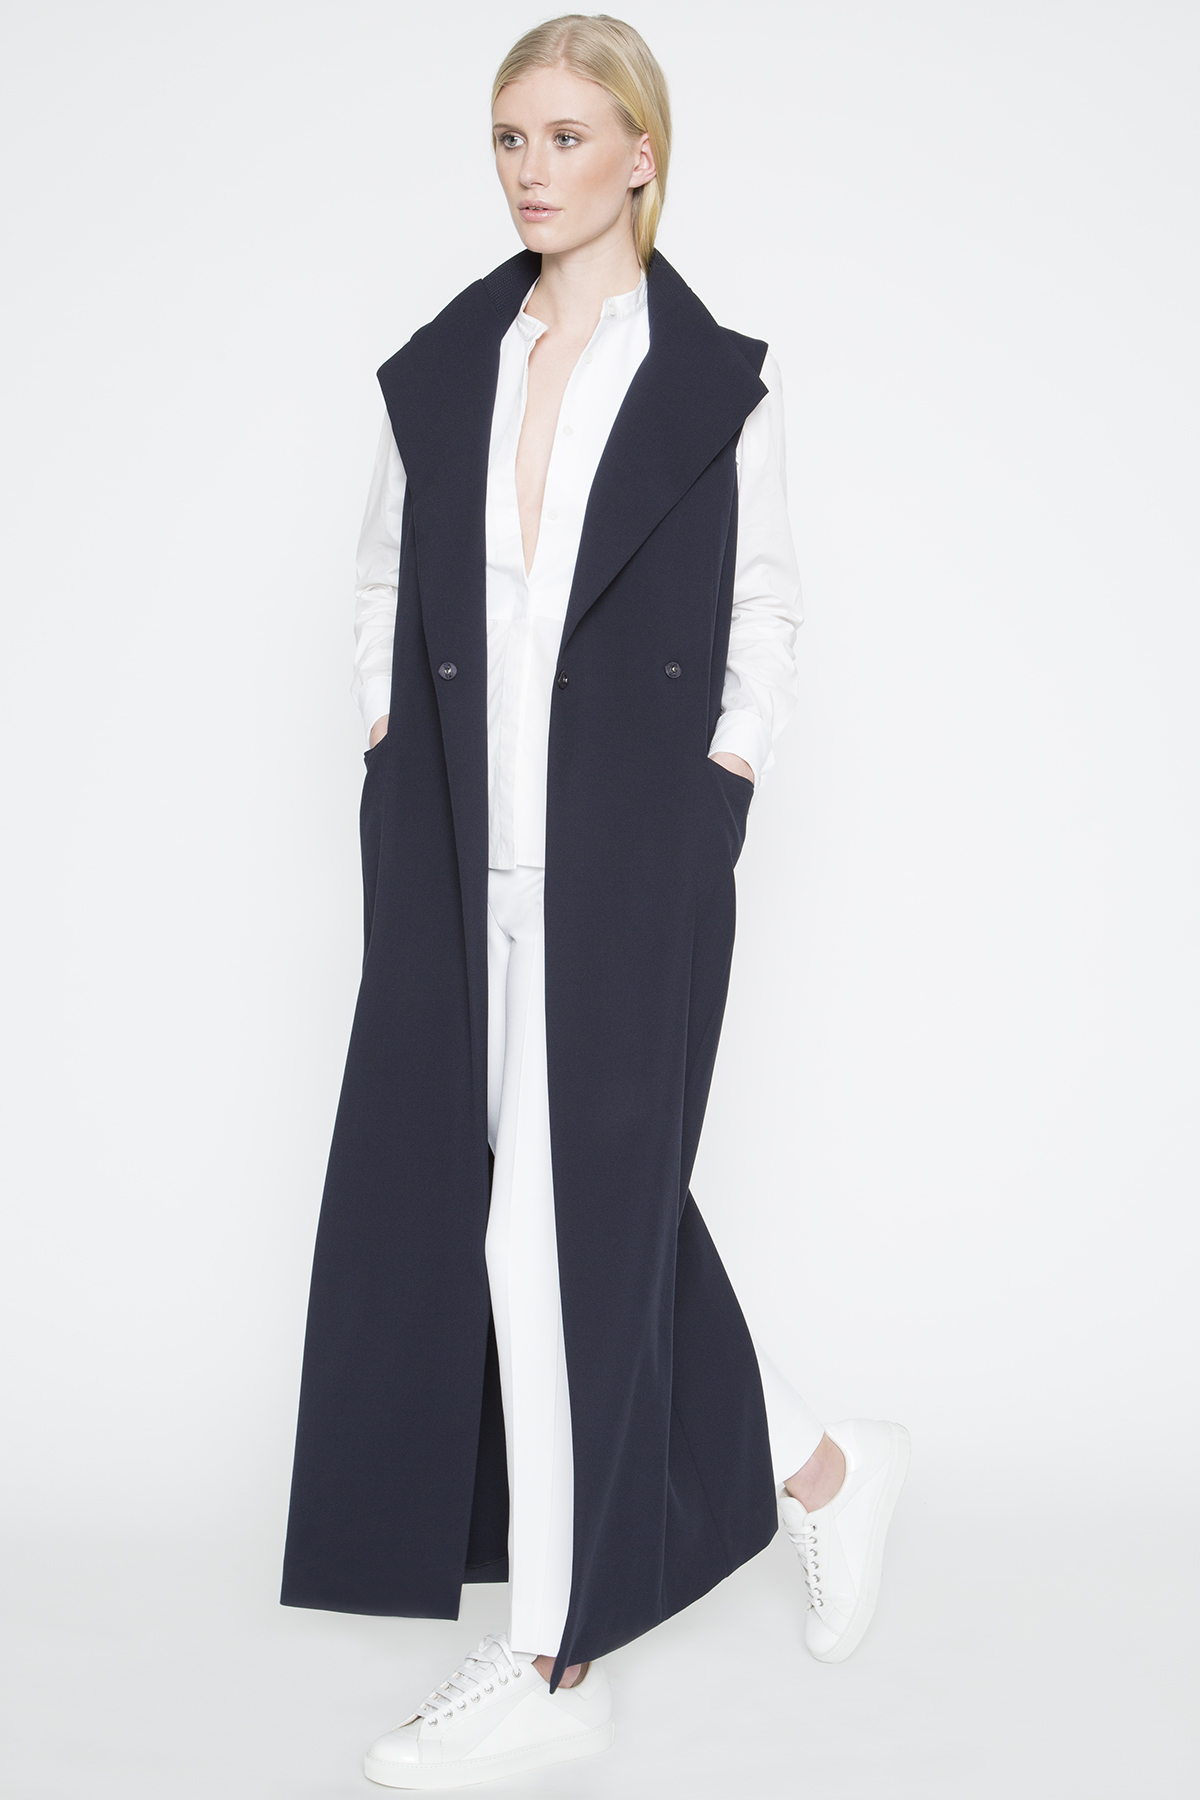 Amanda wakeley Springsteen Long Sleeveless Coat in Blue | Lyst